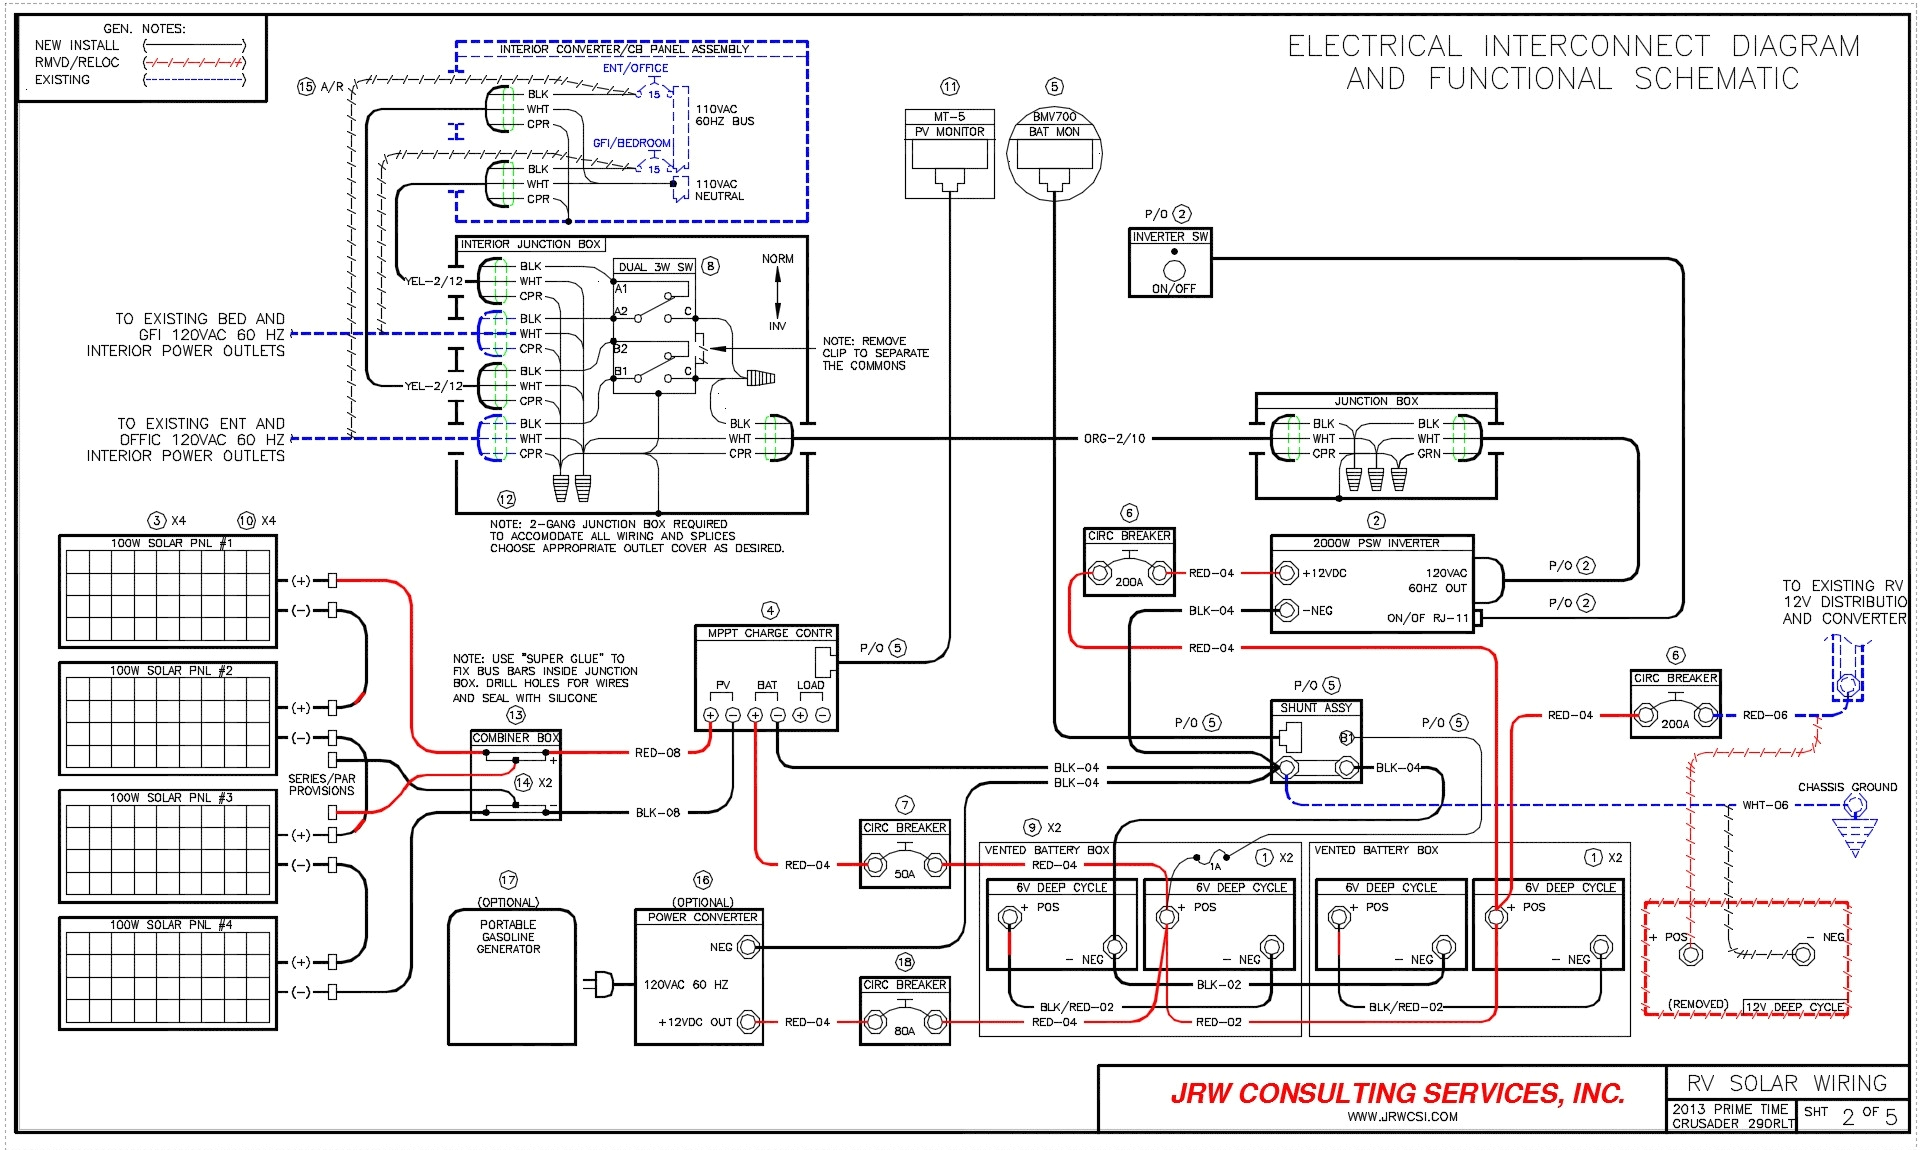 rv electrical wiring diagram for tv wiring diagram expert rv wiring diagram inverter rv electrical diagram